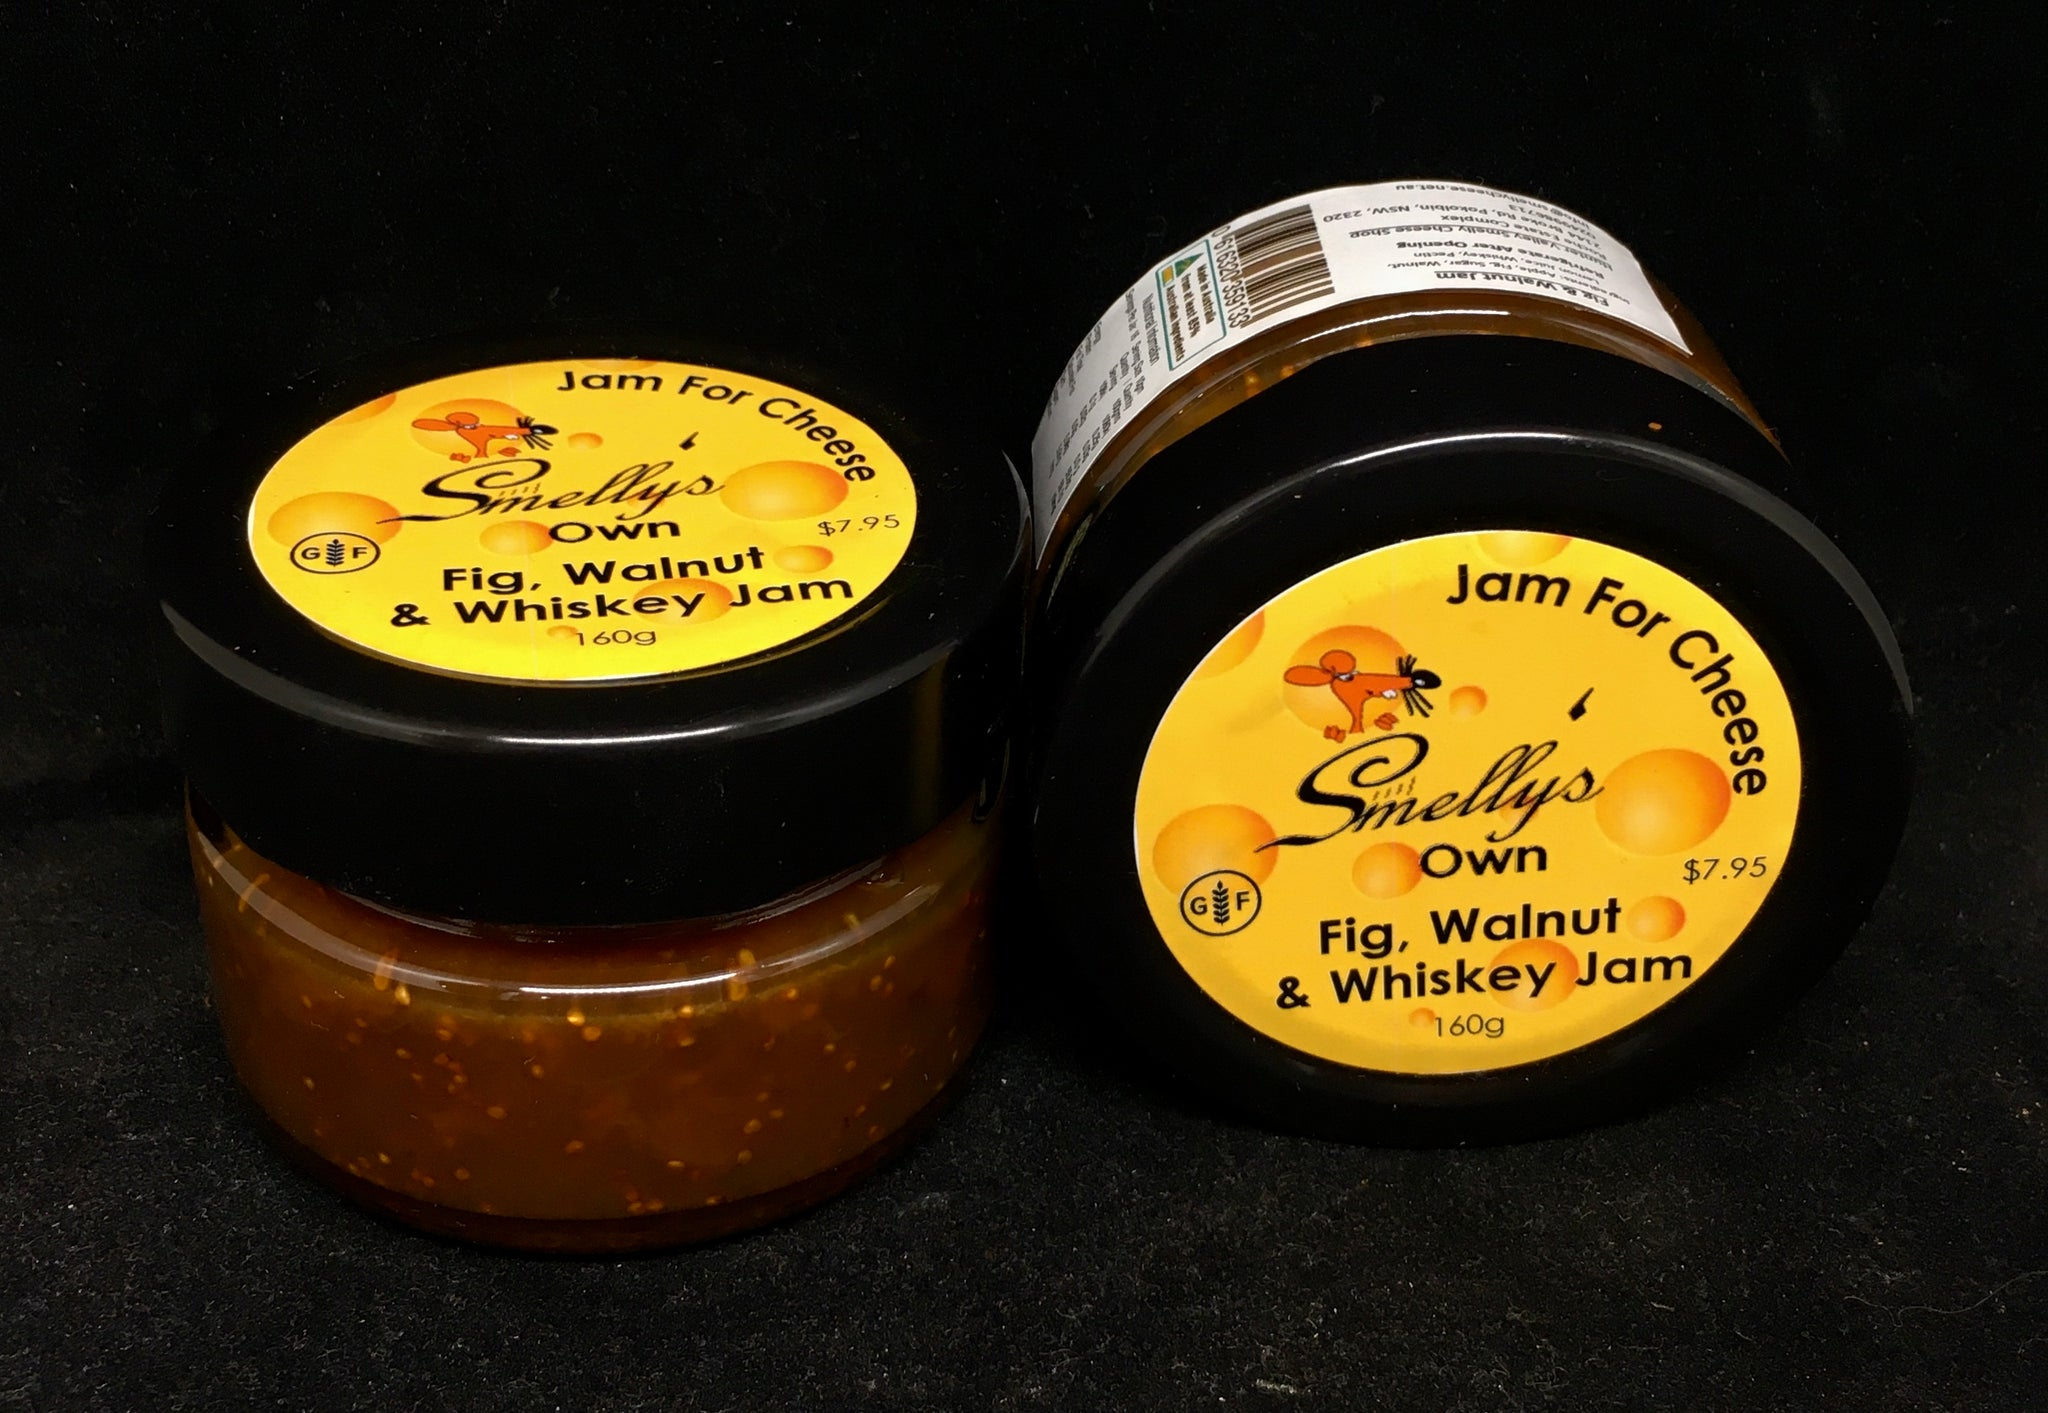 Smelly's Own - Fig, Walnut & Whisky Jam